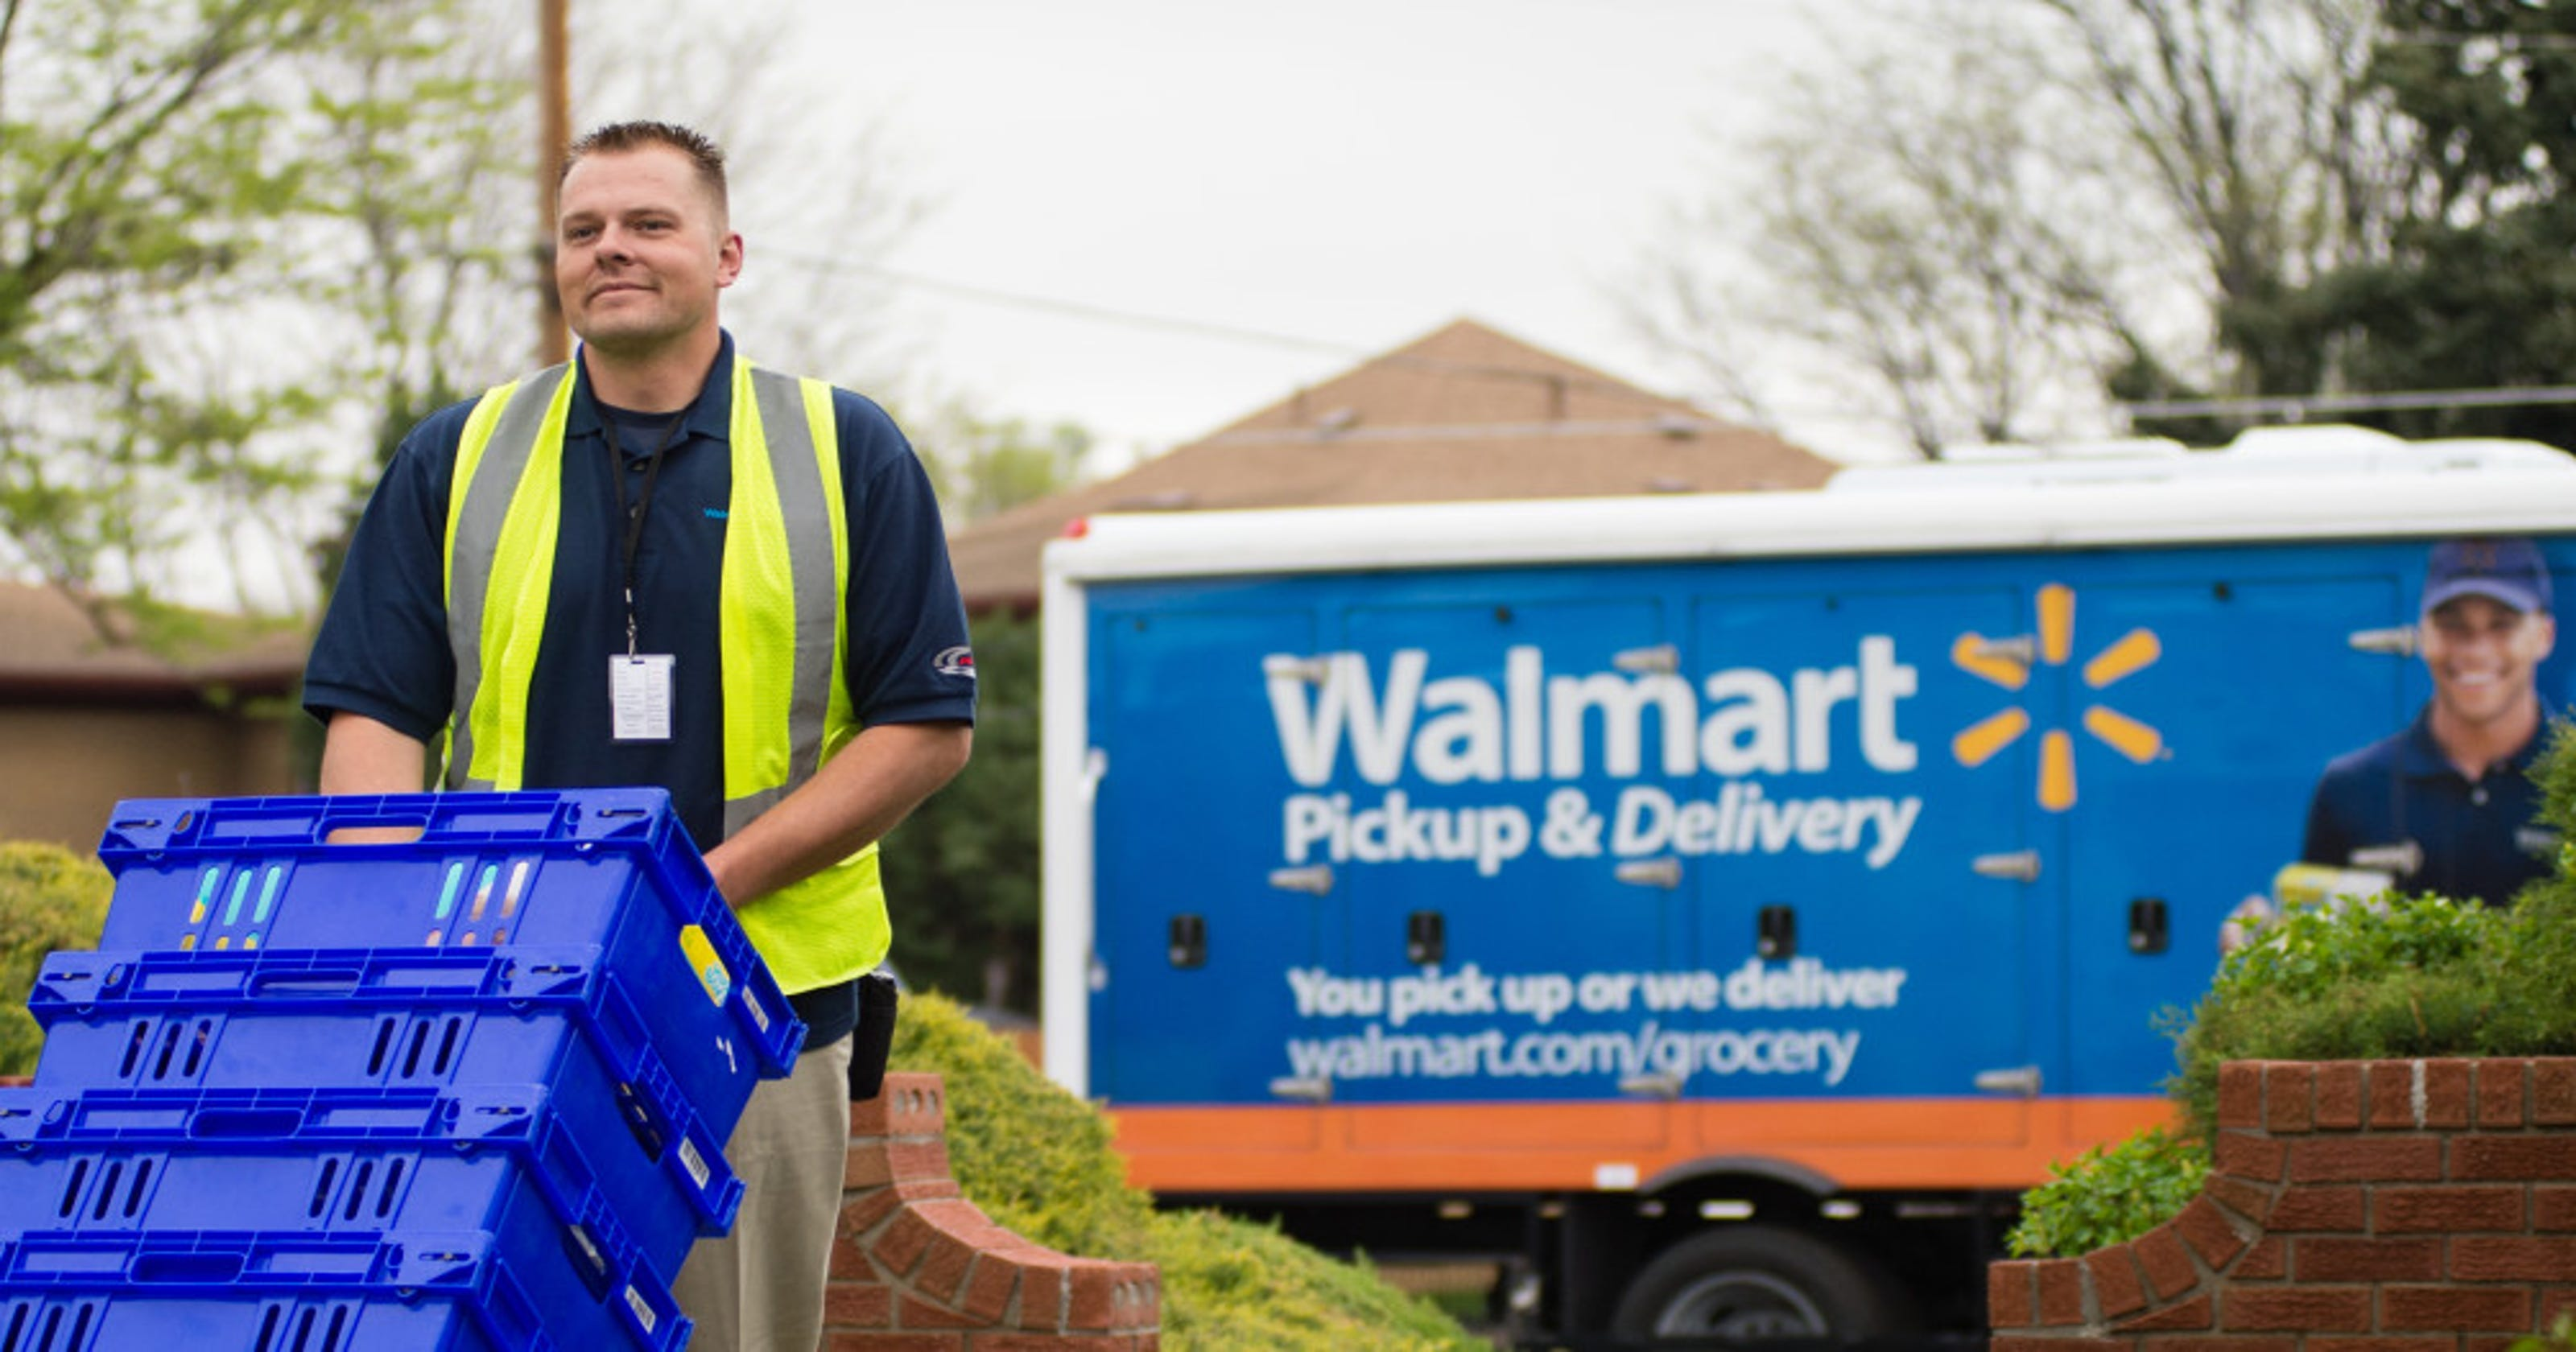 Walmart alcohol pickup and delivery available in Pensacola, Navarre